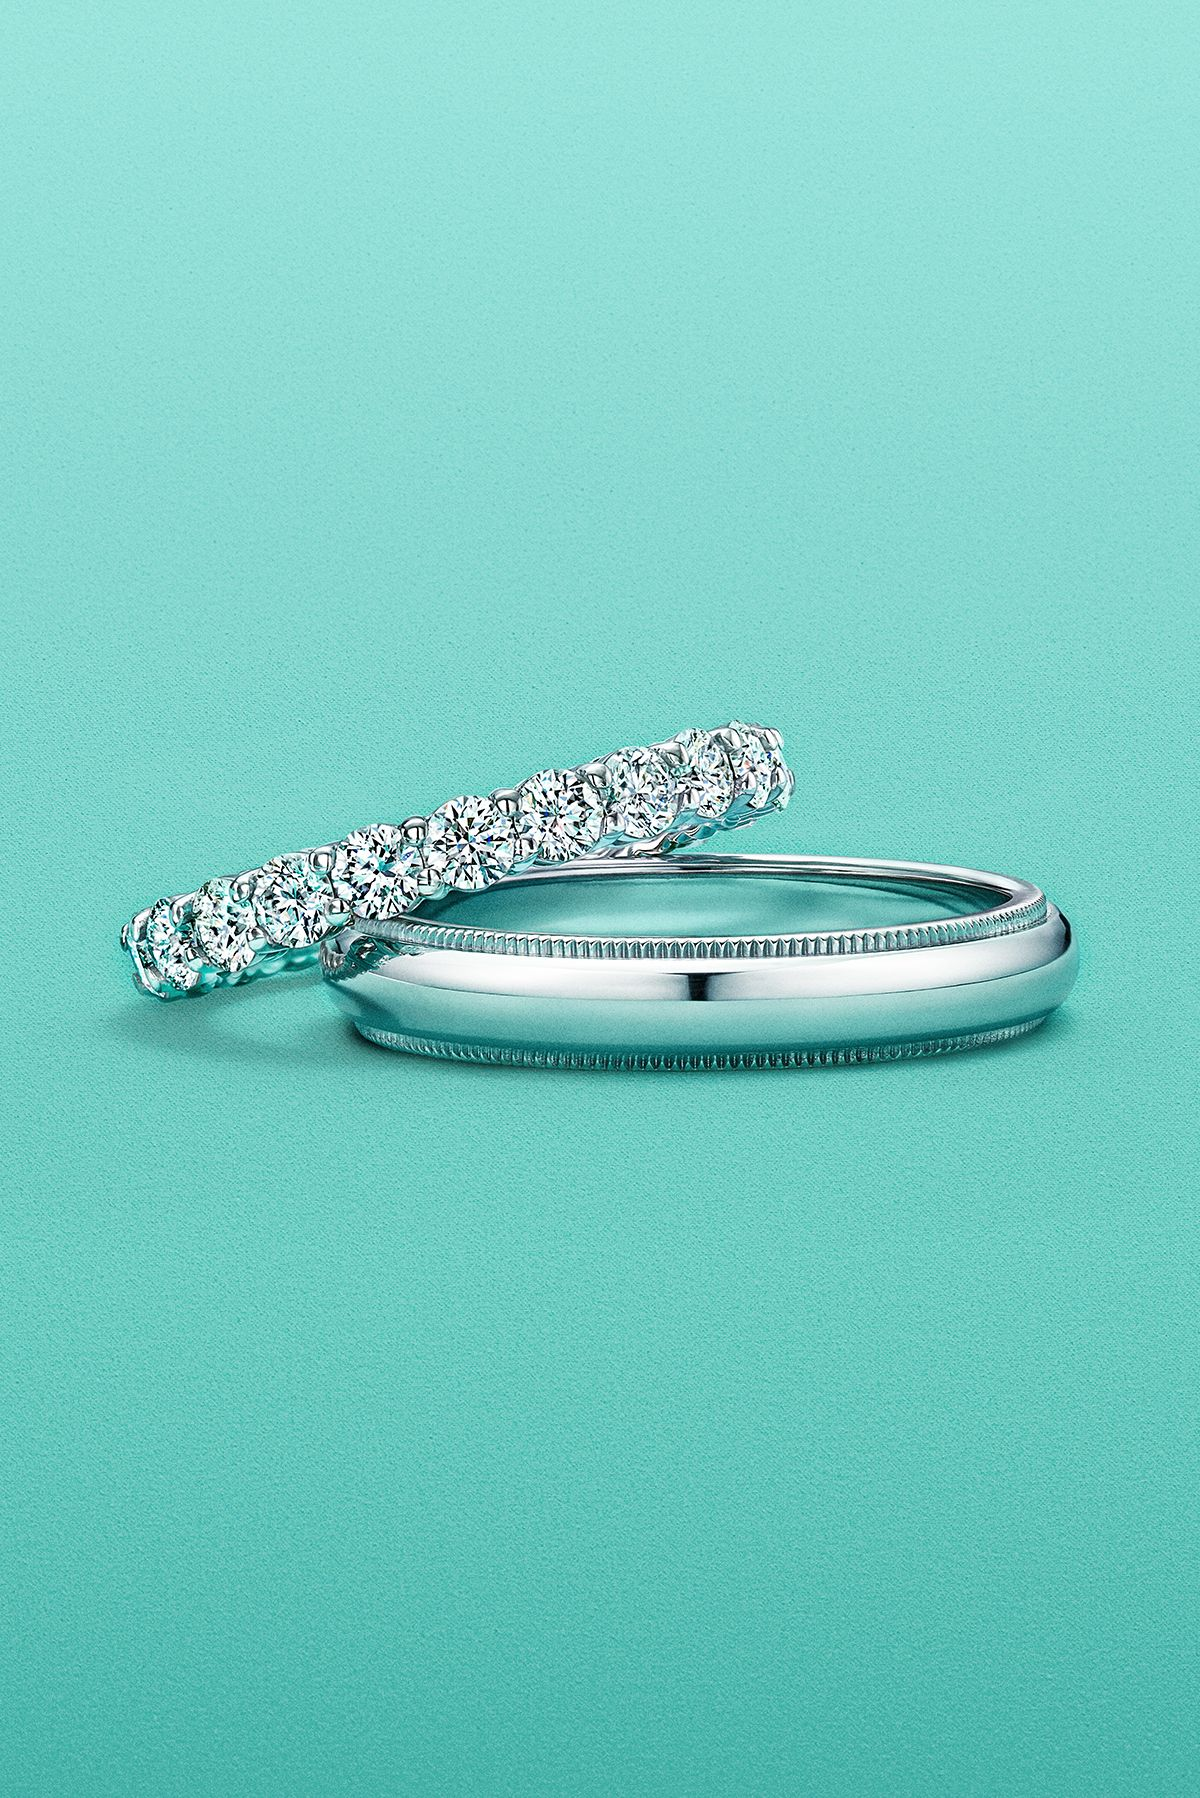 Tiffany Wedding Bands Tiffany Wedding Band Tiffany Wedding Rings Tiffany And Co Necklace